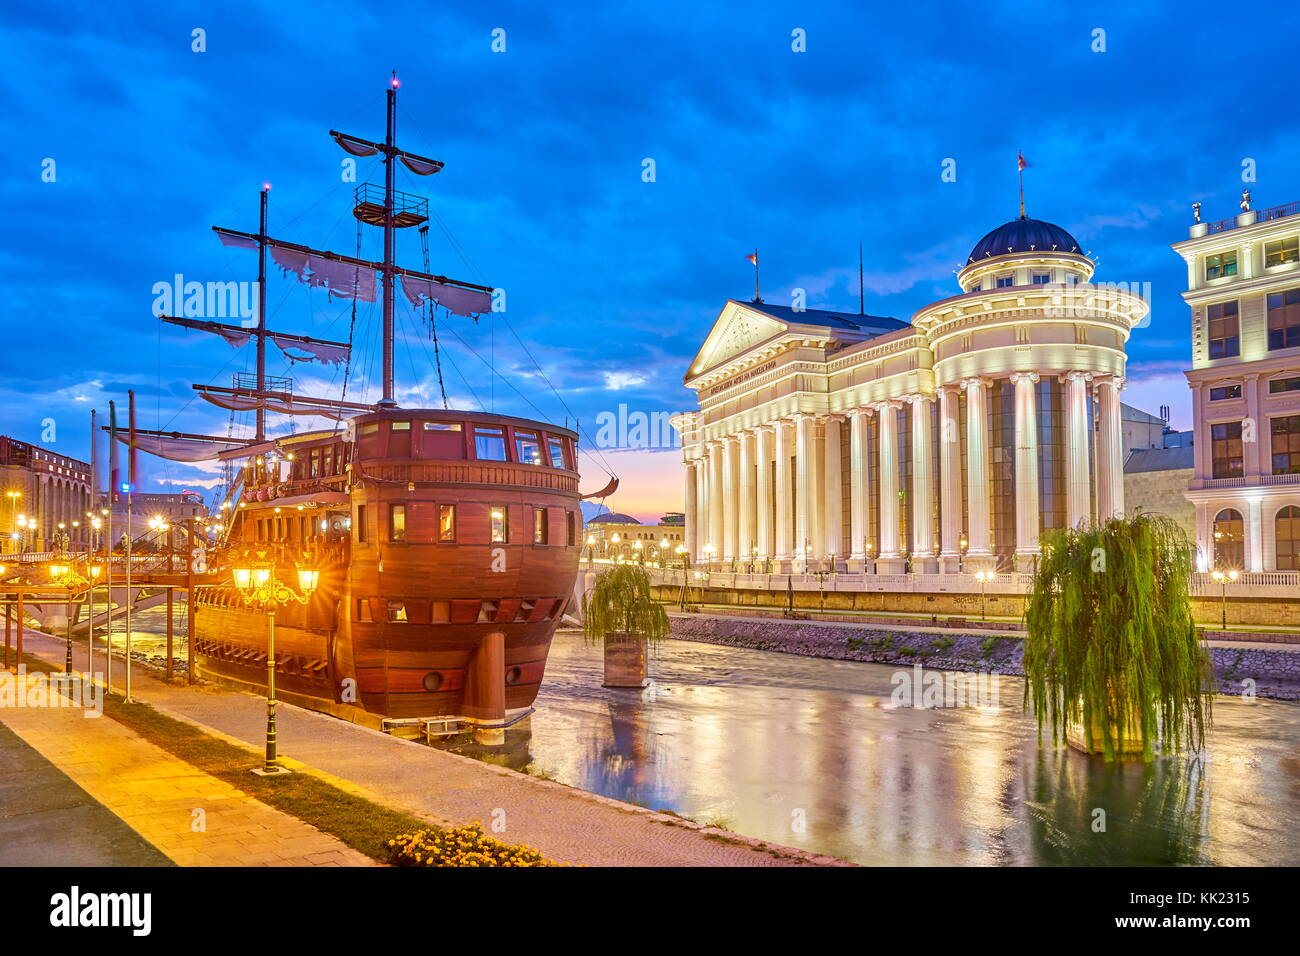 Galleon restaurant and Archeological Museum at evening, Skopje, Macedonia - Stock Image